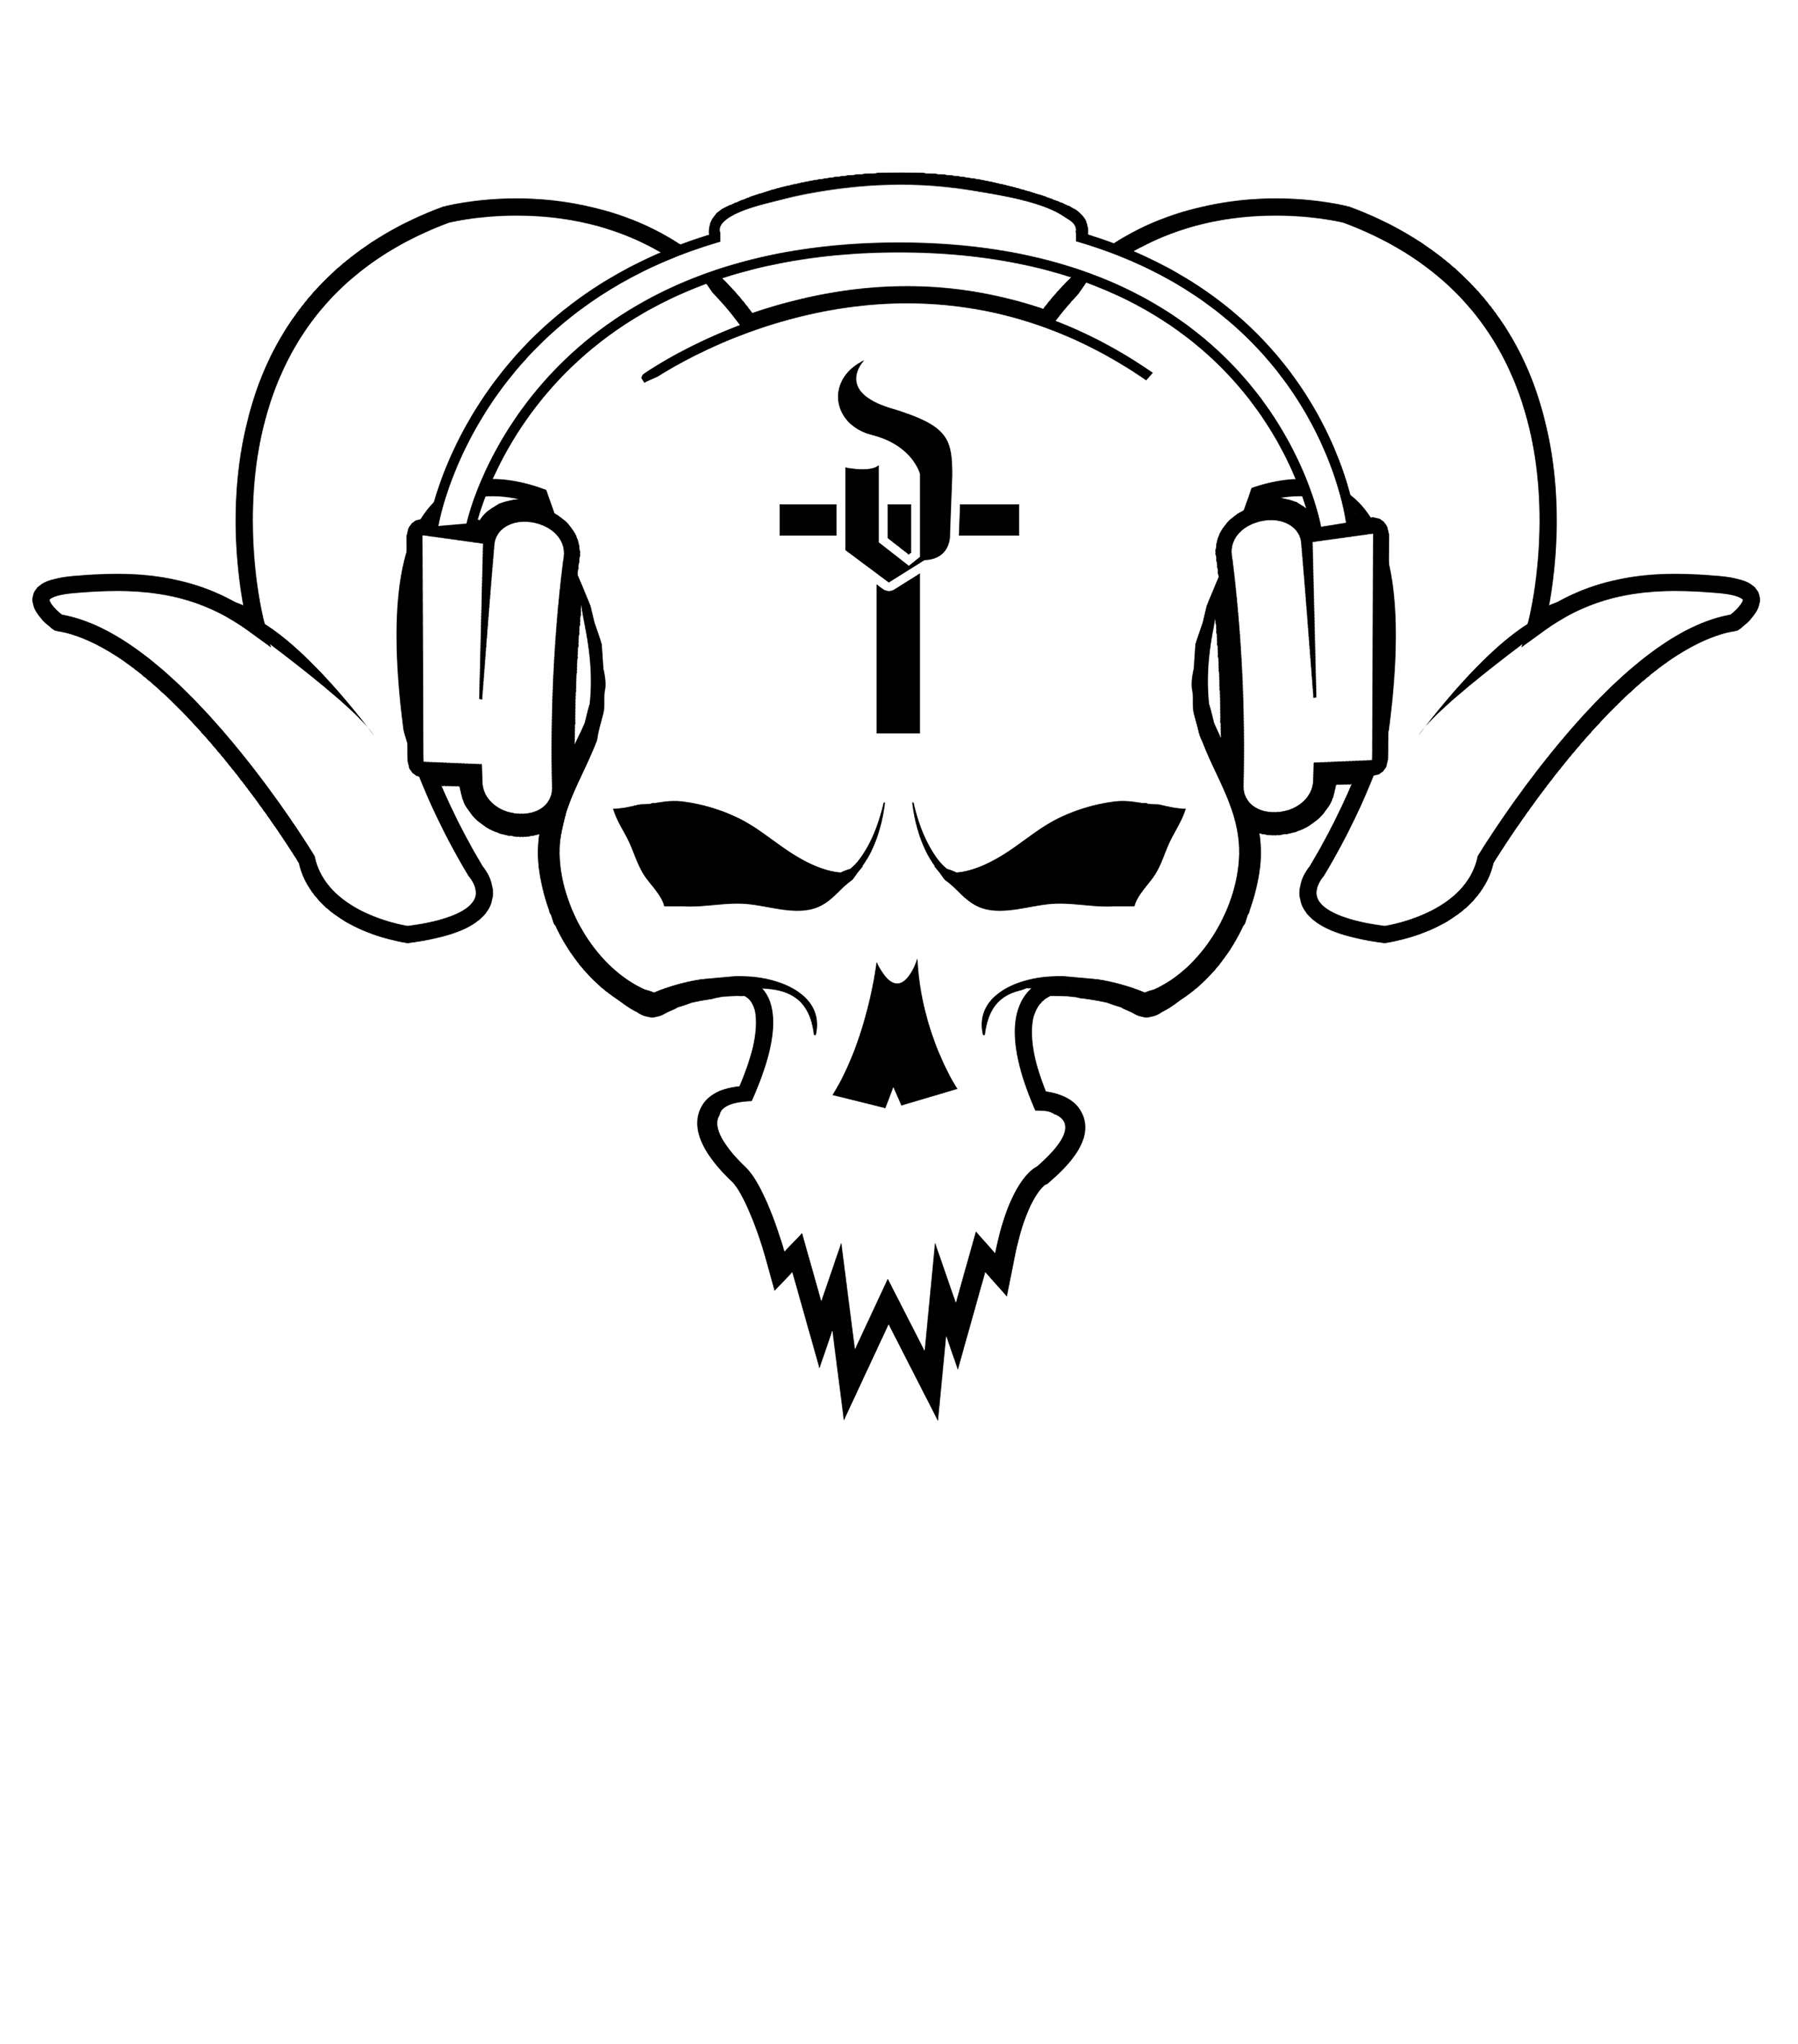 DARKTUNES MUSIC GROUP